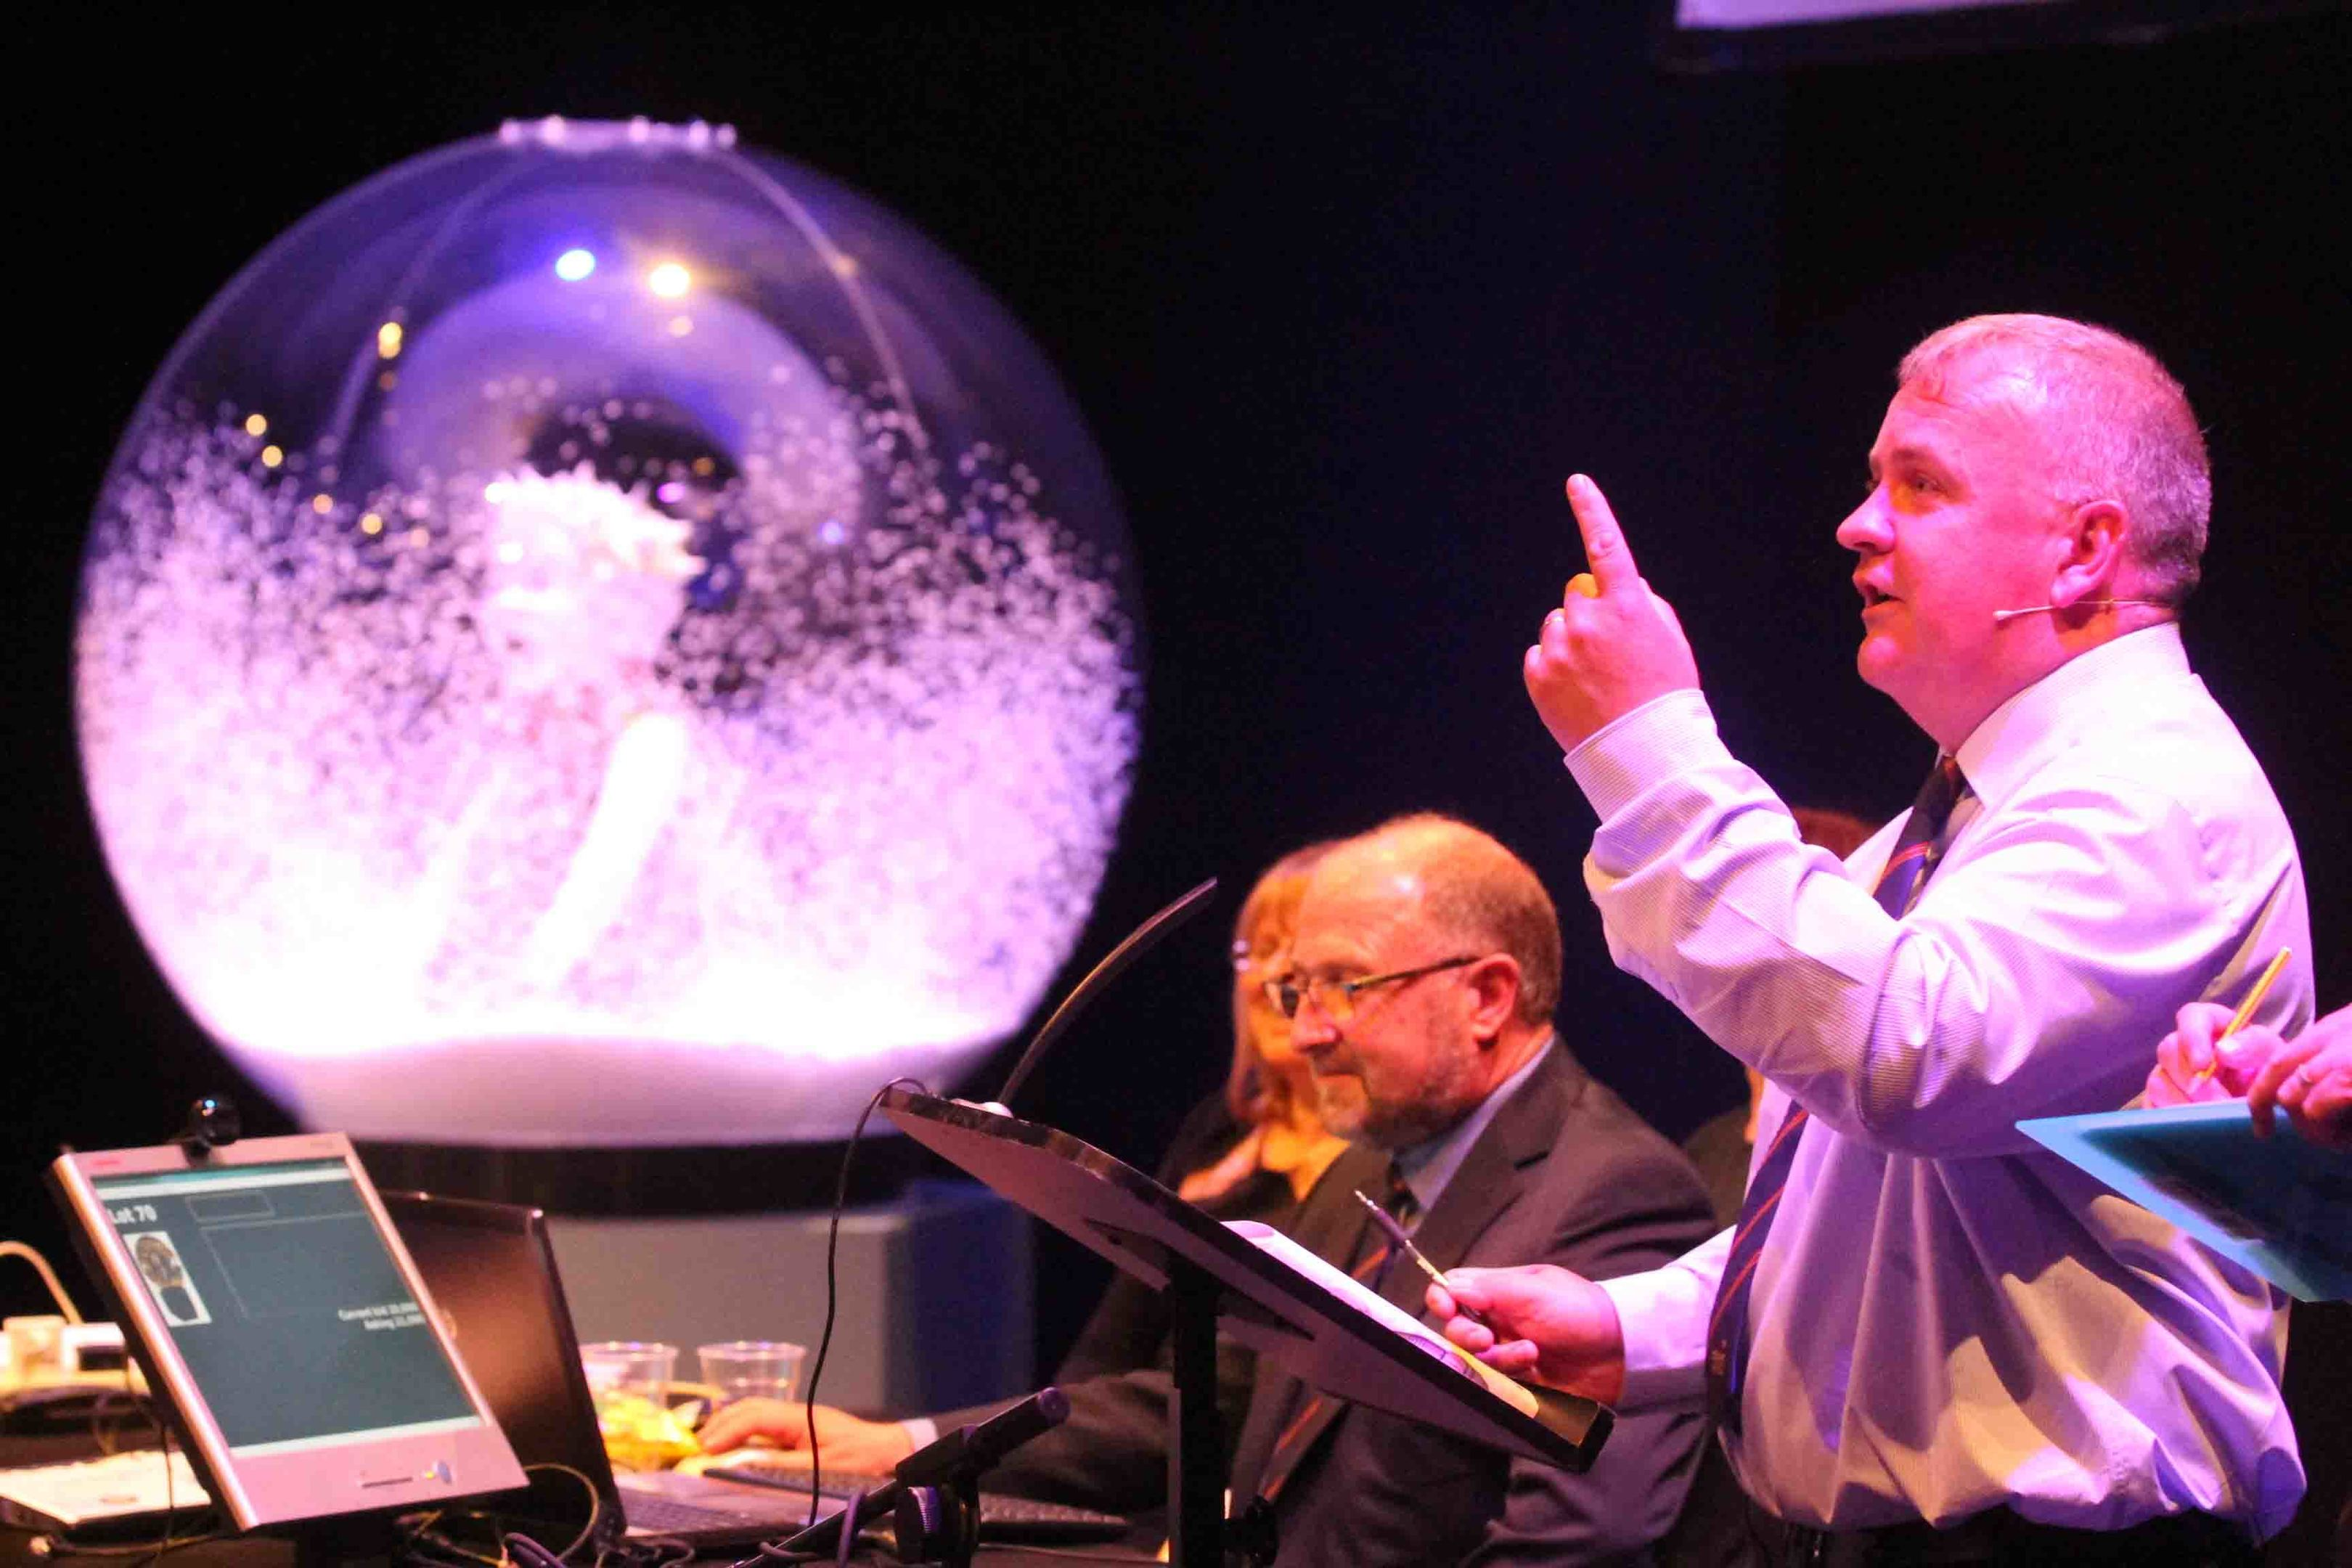 The snowglobe goes under the hammer